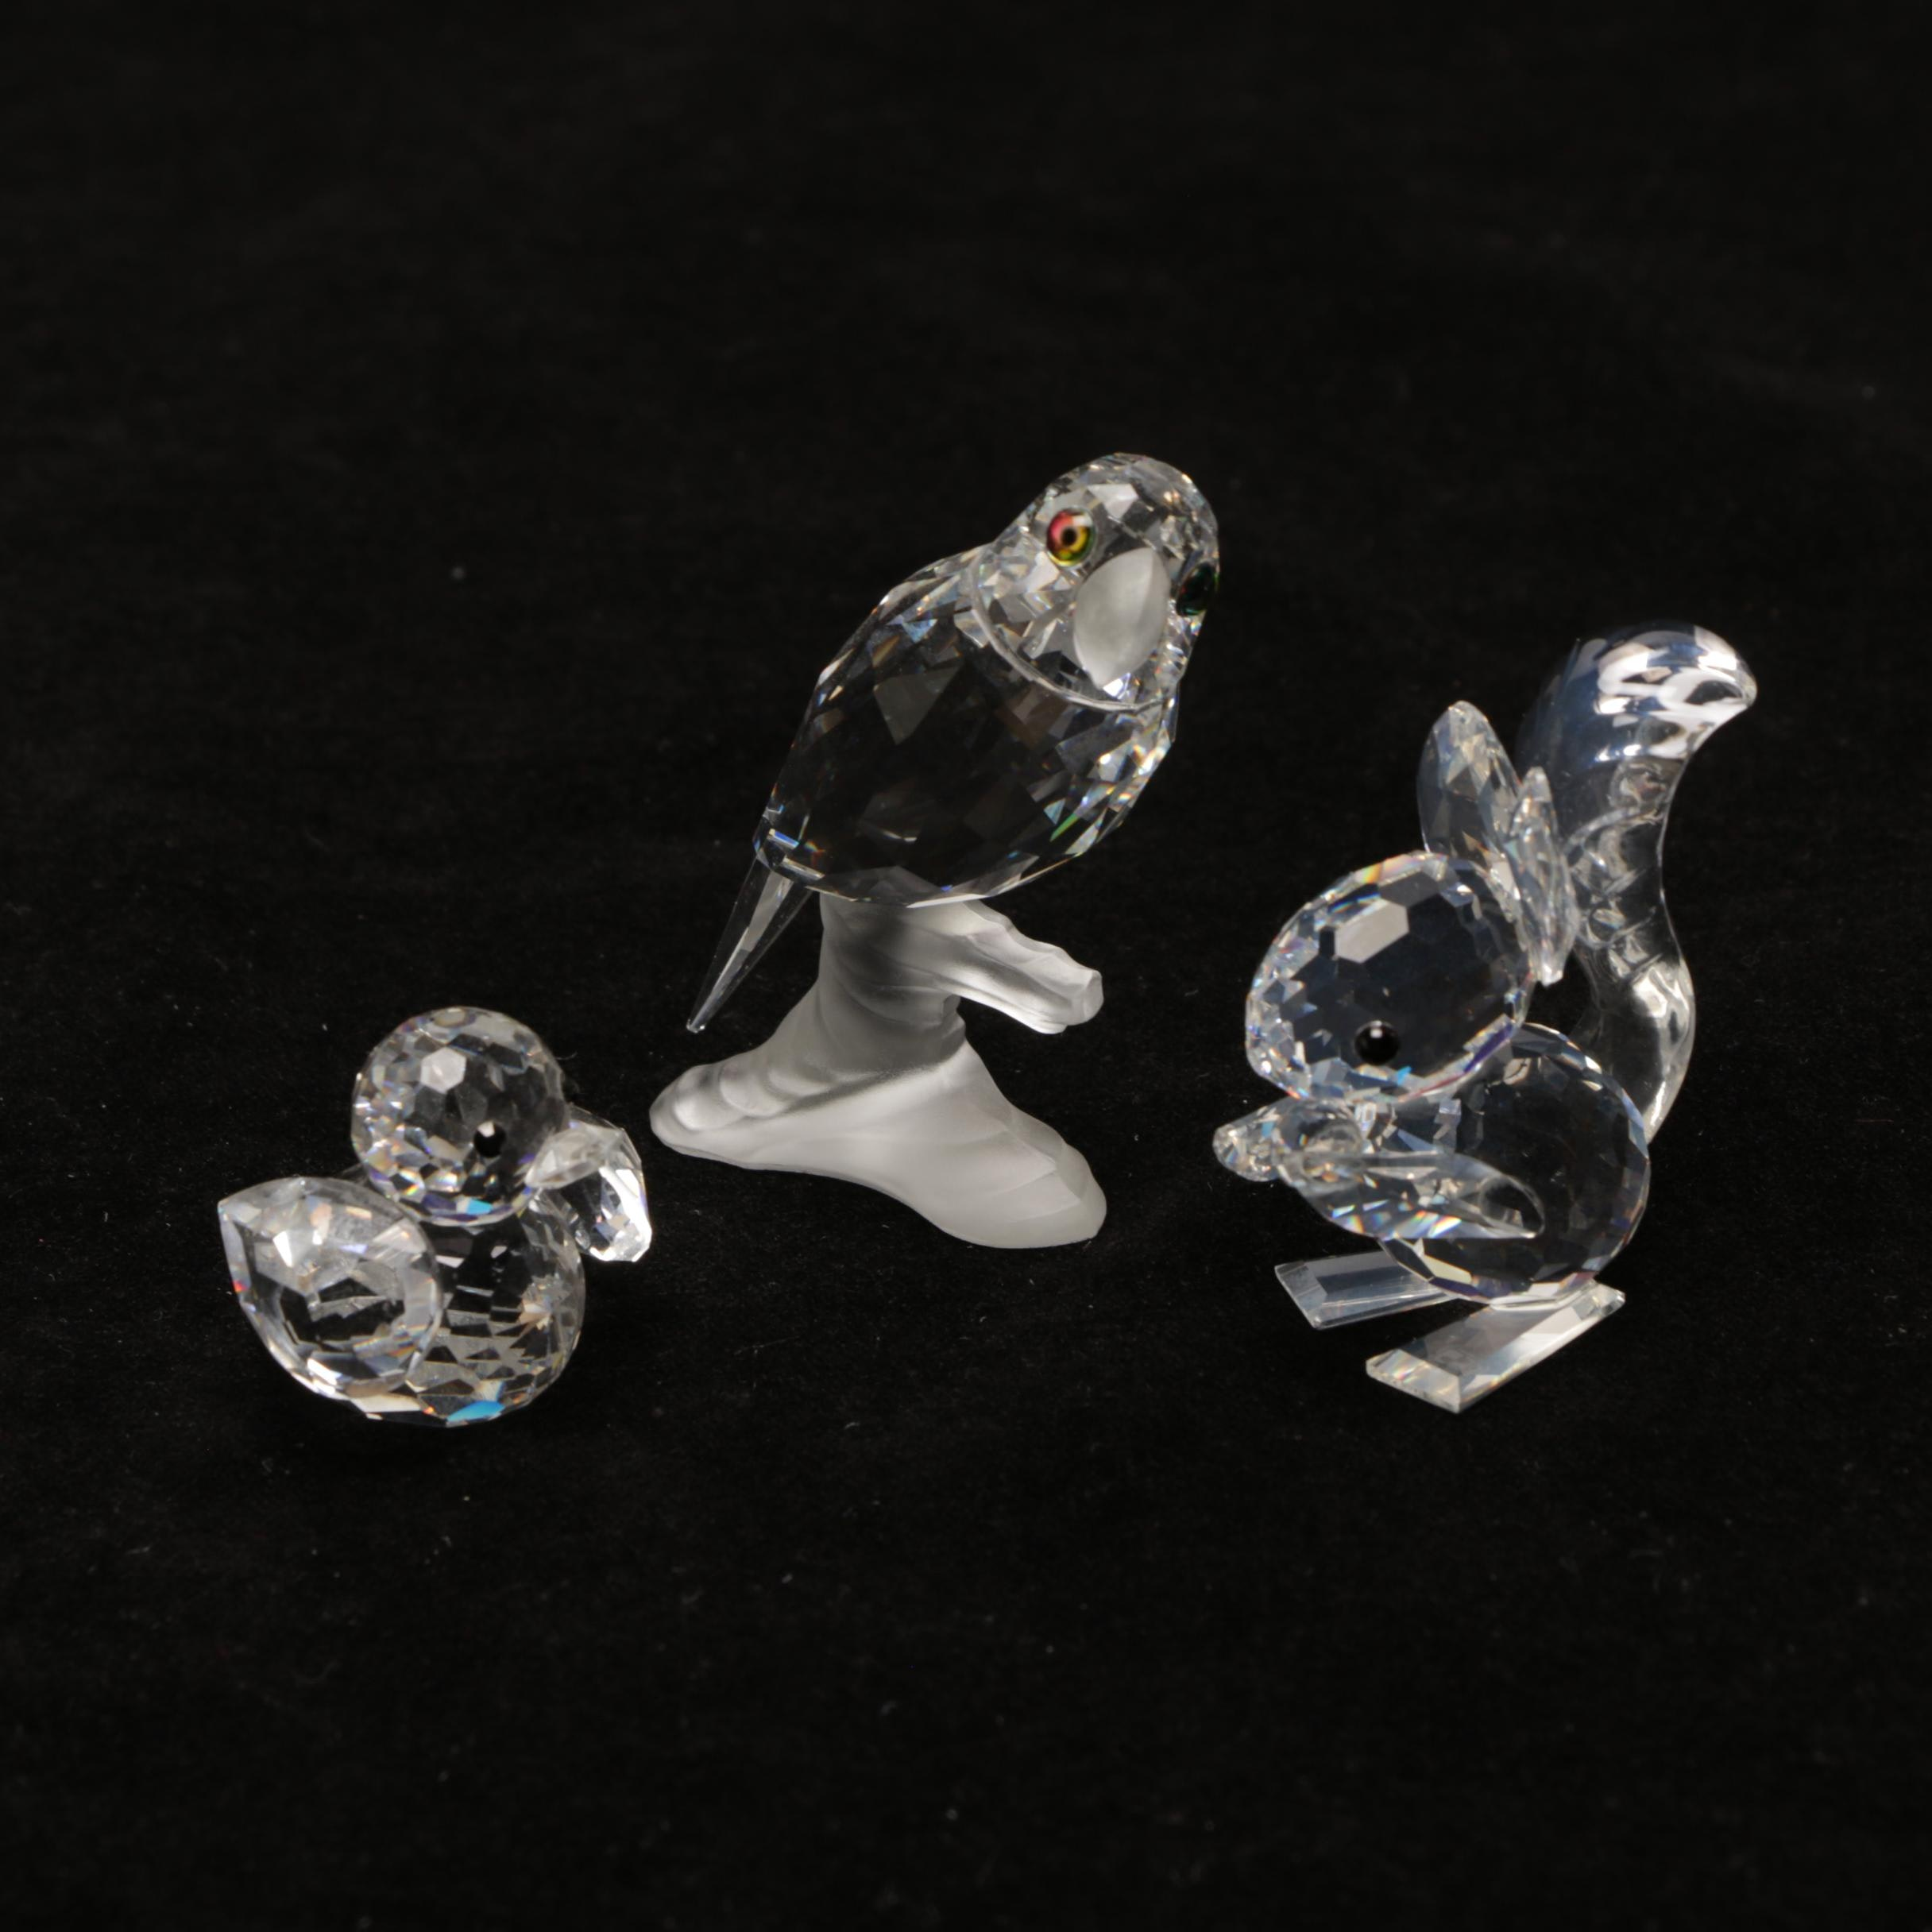 Swarovski Crystal Squirrel & Bird Miniature Figurines